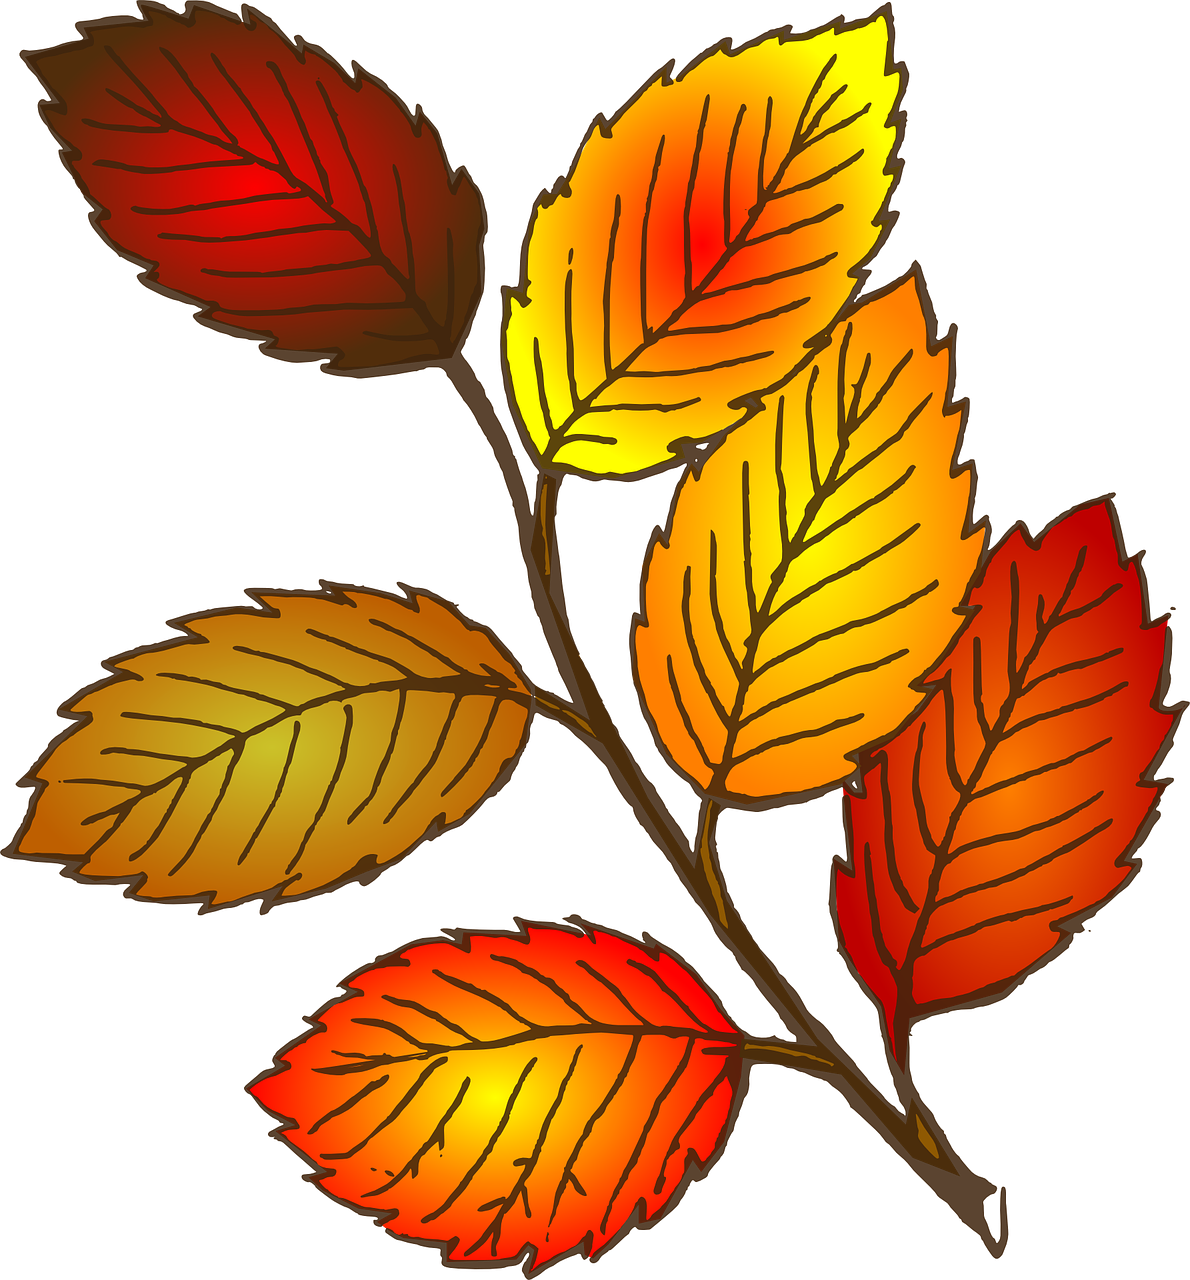 CC image of fall leaves from needpix.com